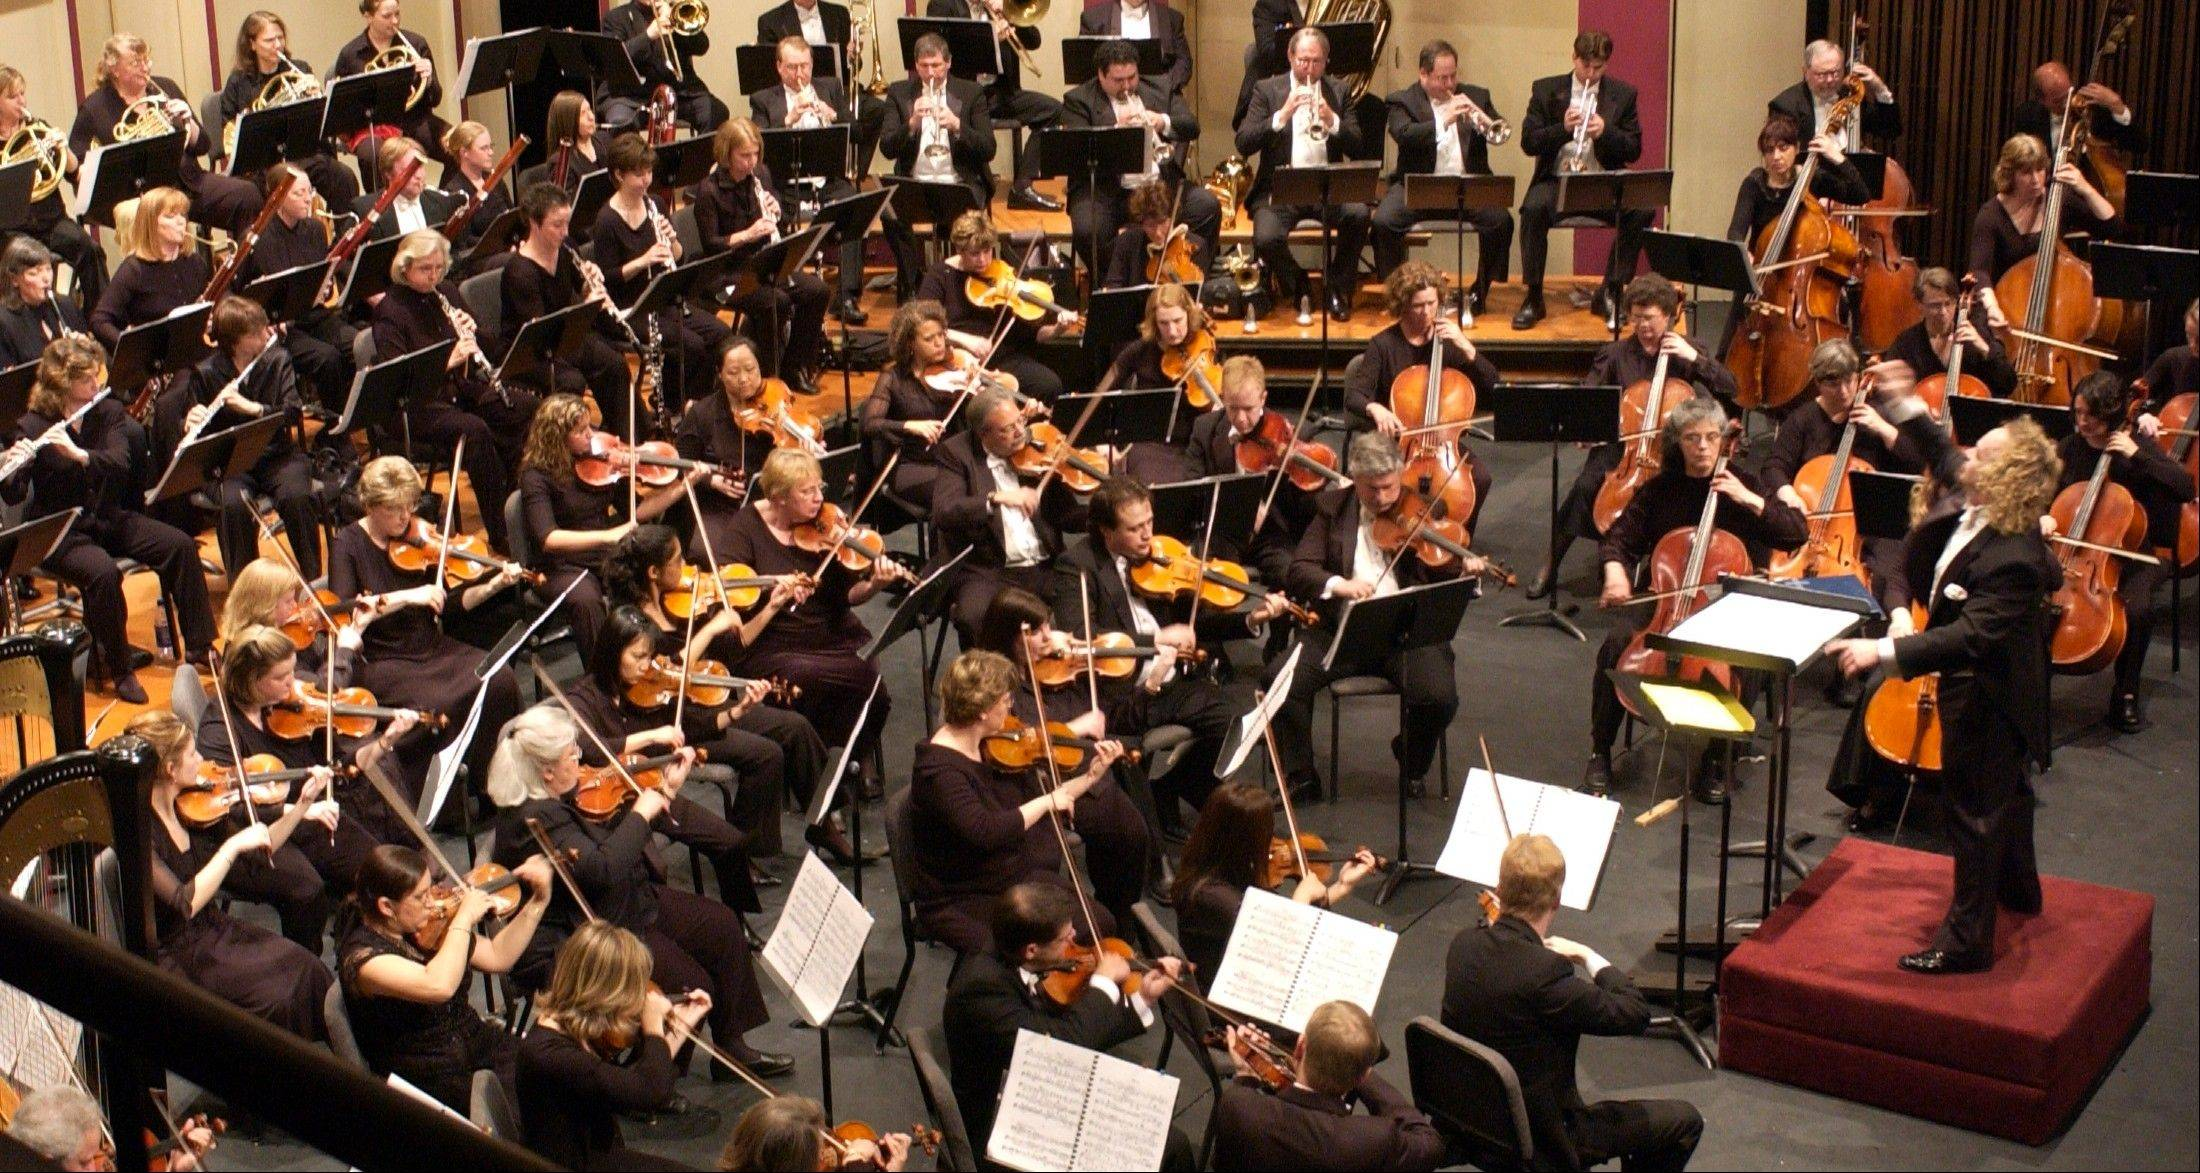 Pledges to the New Philharmonic Orchestra totaled $20,000 five days after a pledge drive began, College of DuPage officials said Thursday.